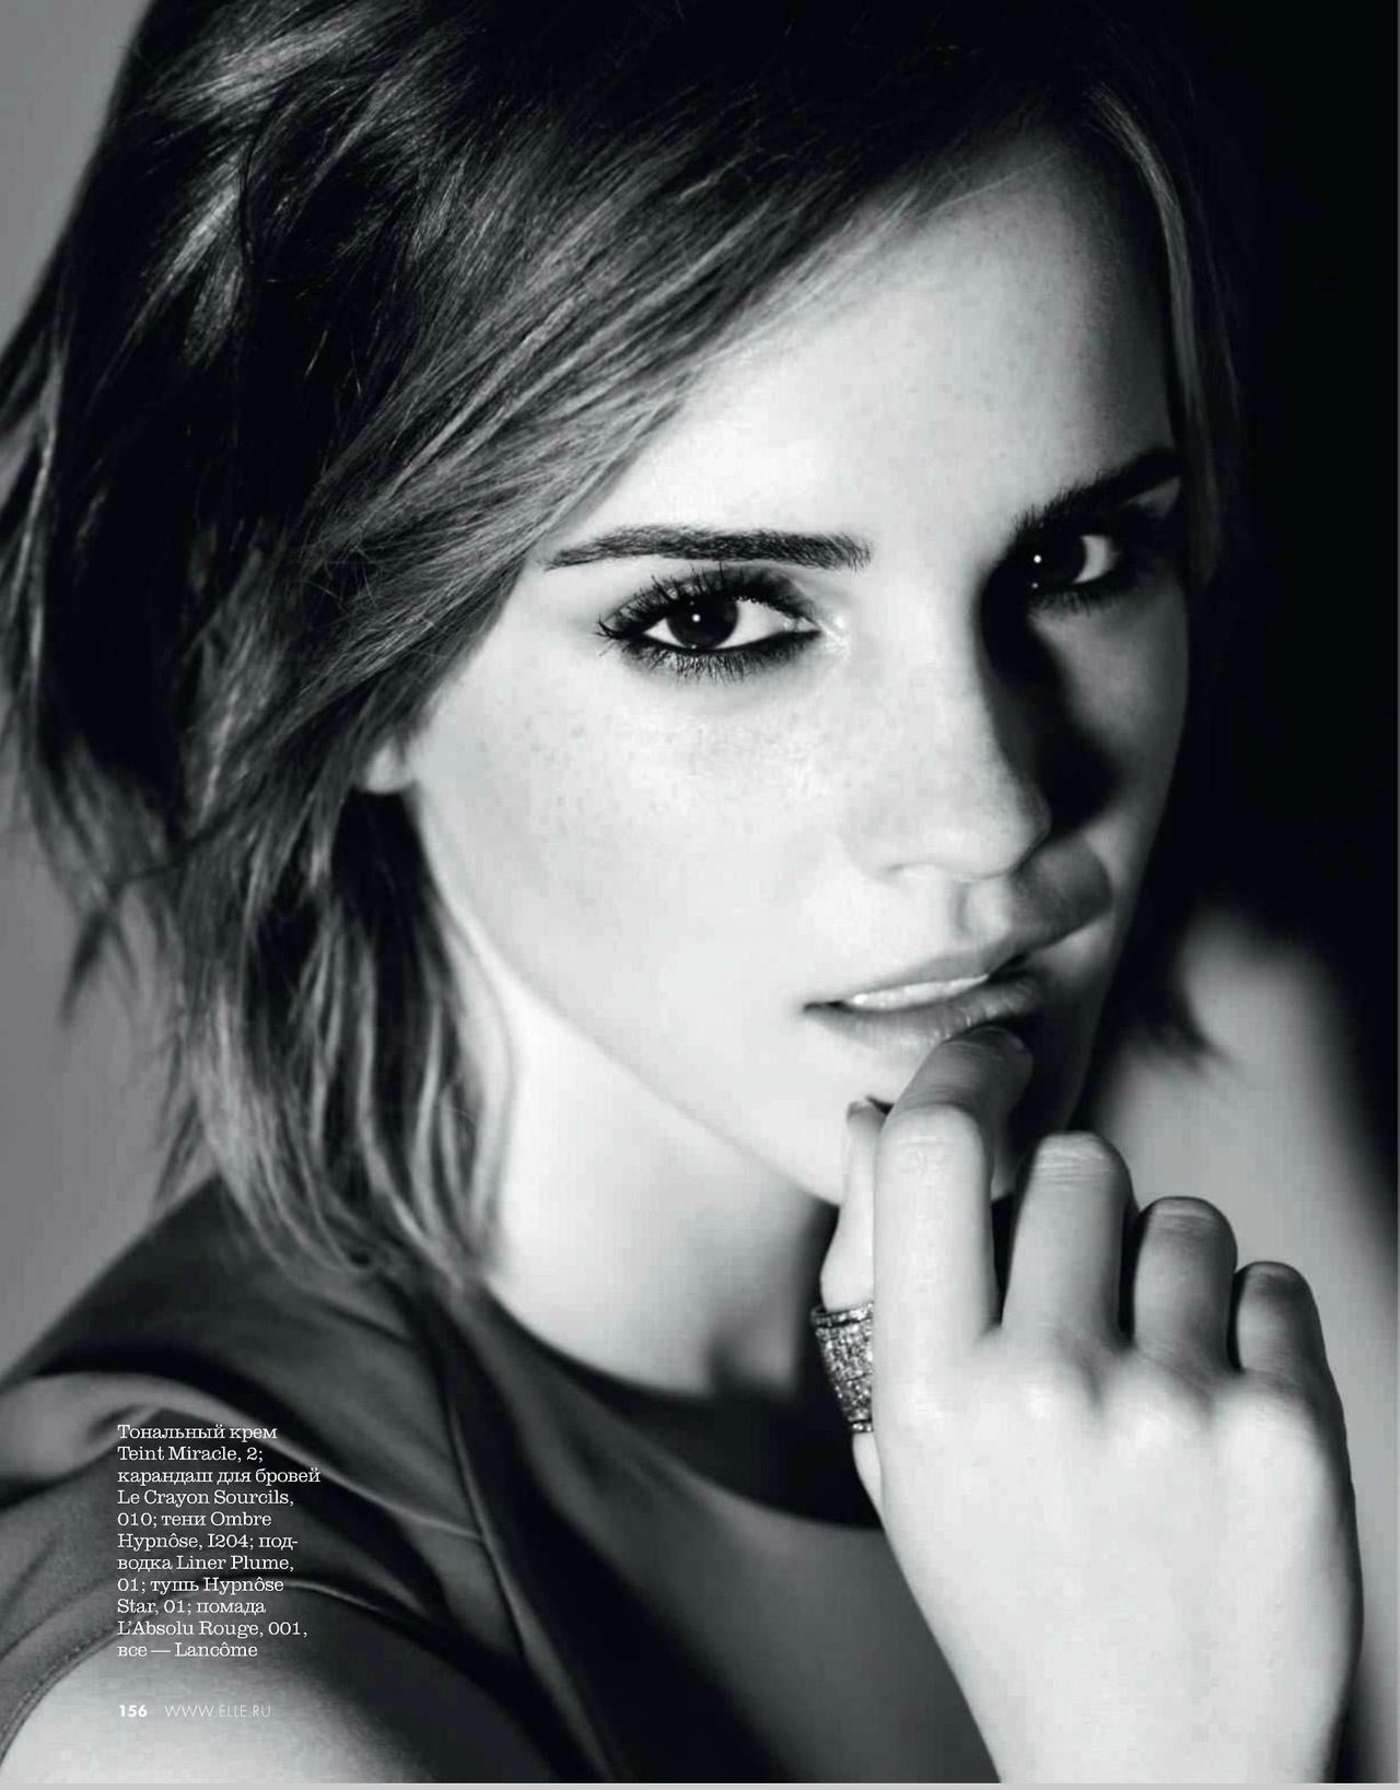 a-guide-to-cool-emma-watson-photos-best-of-folkr-10